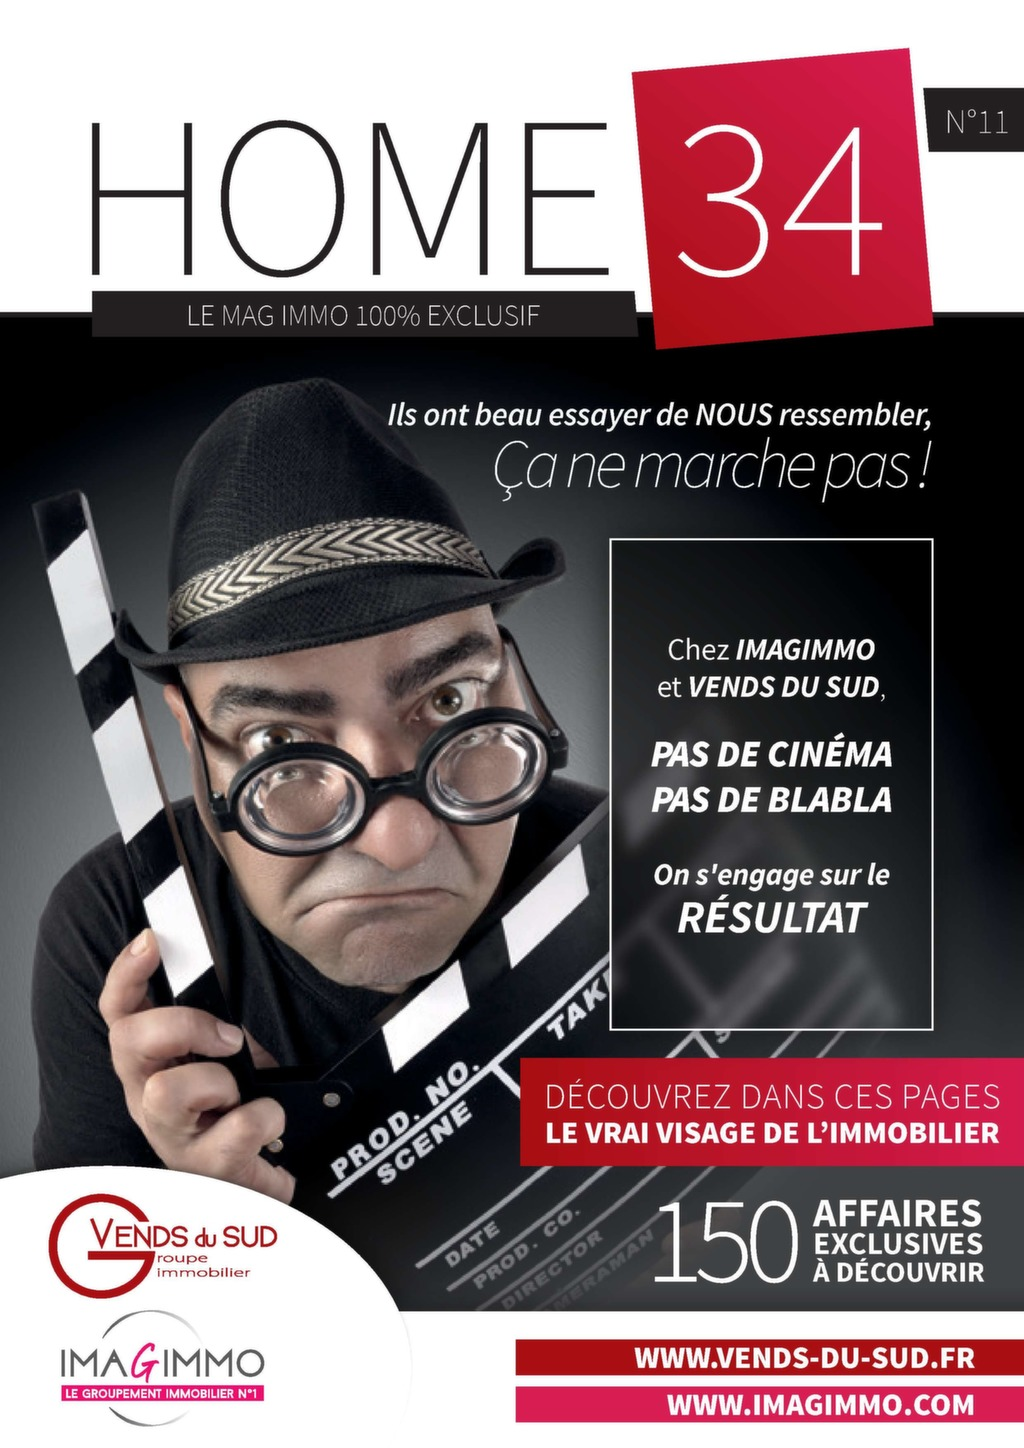 HOME 34